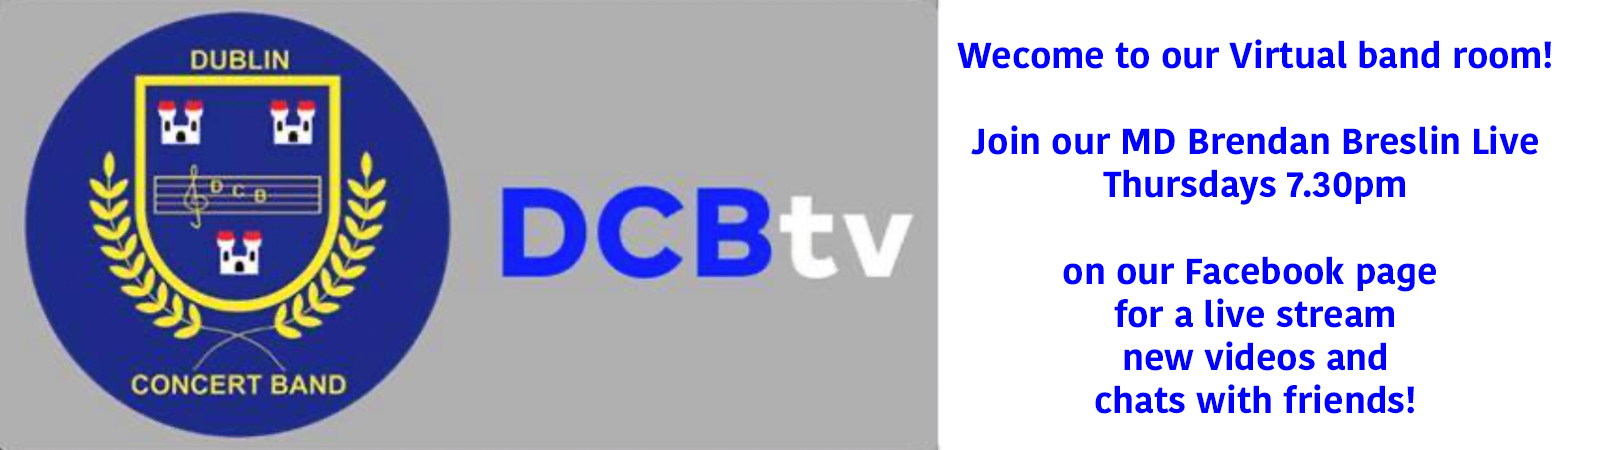 dcb tv website banner